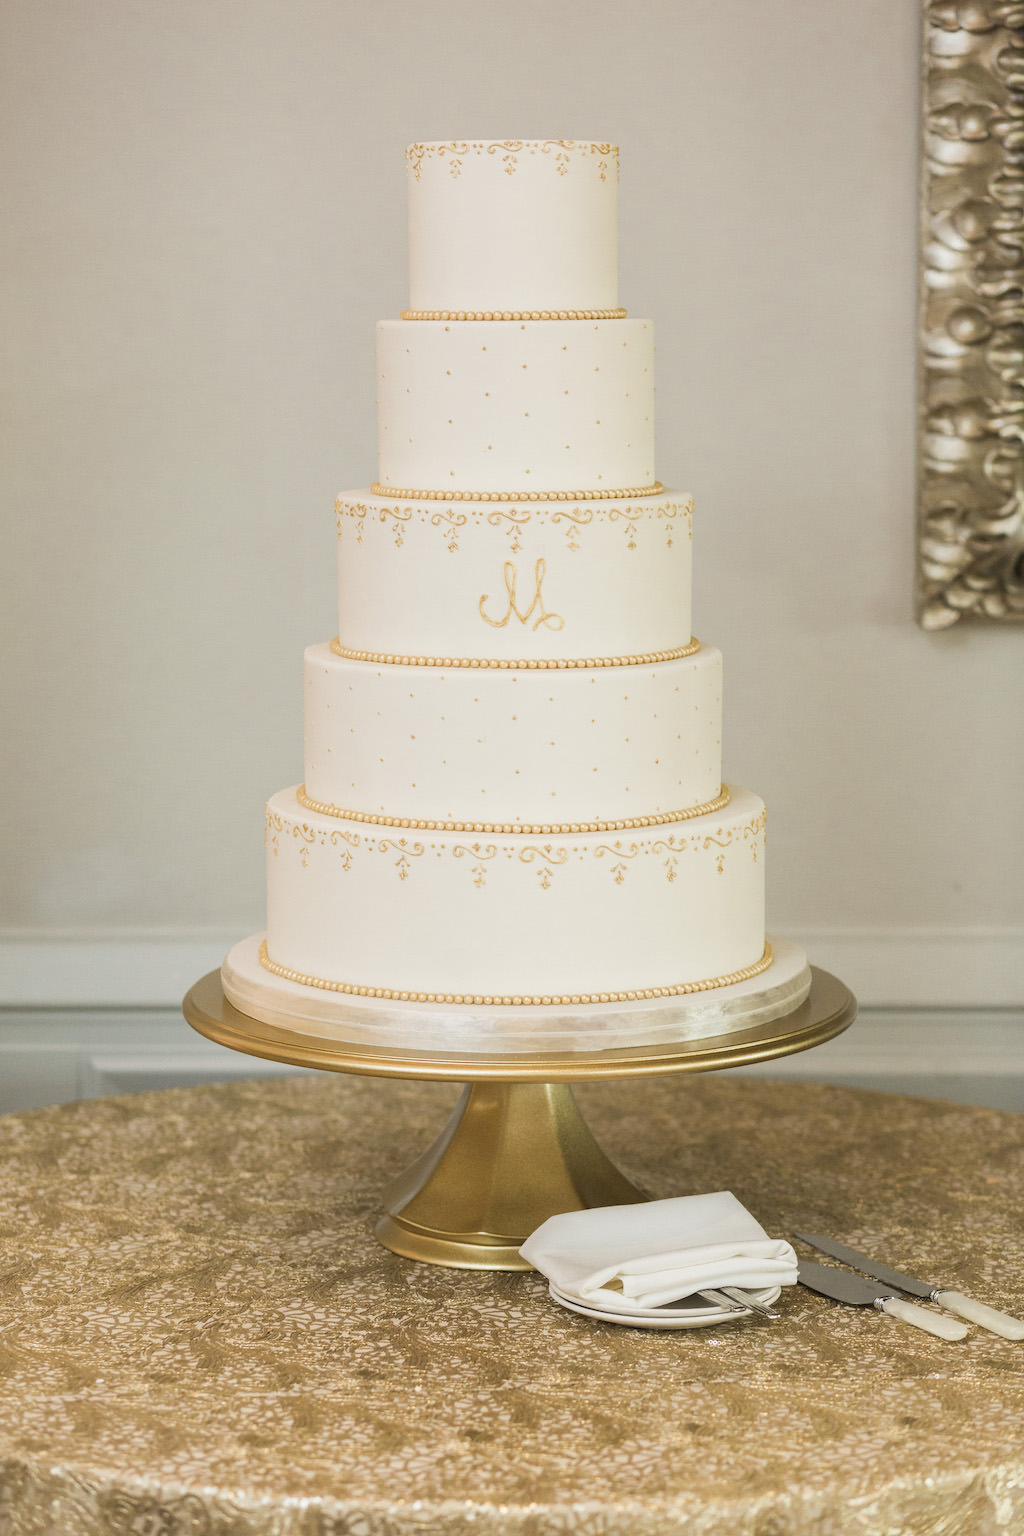 Classic Five Tier White Wedding Cake with Gold Embellishments on Round Table with Gold Tablecloth and Monogram Initials